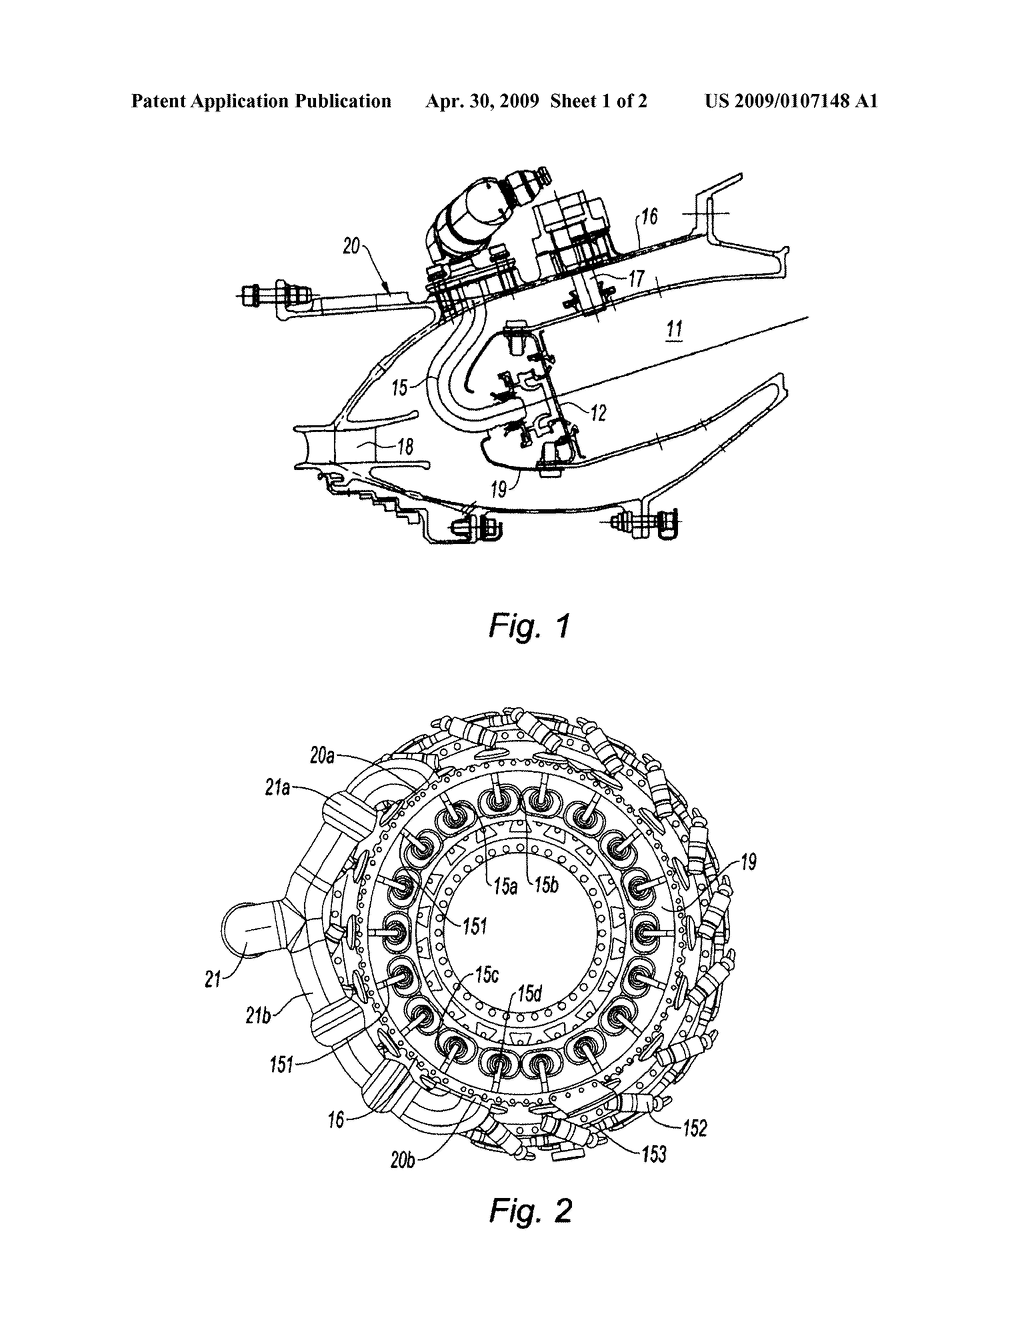 Annular Combustion Chamber Of A Gas Turbine Engine Diagram Schematic And Image 02